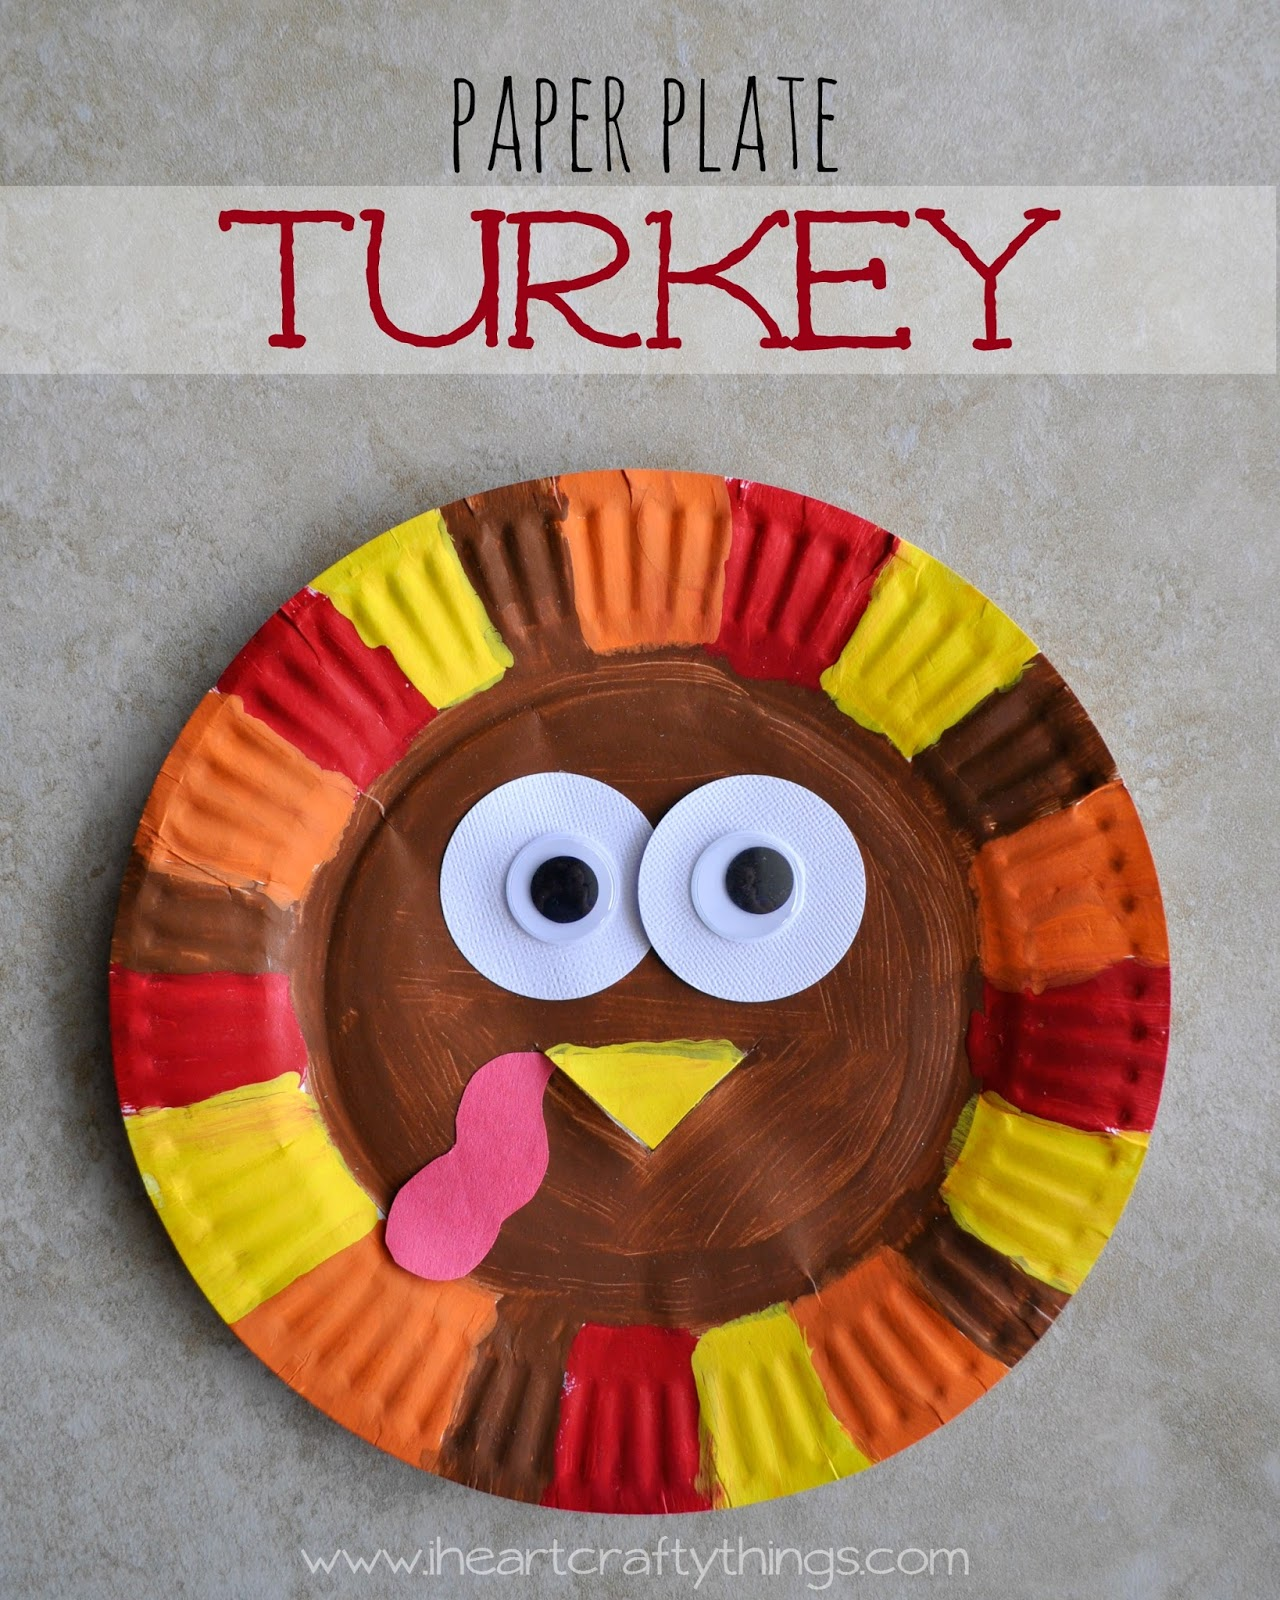 I HEART CRAFTY THINGS Paper Plate Turkey